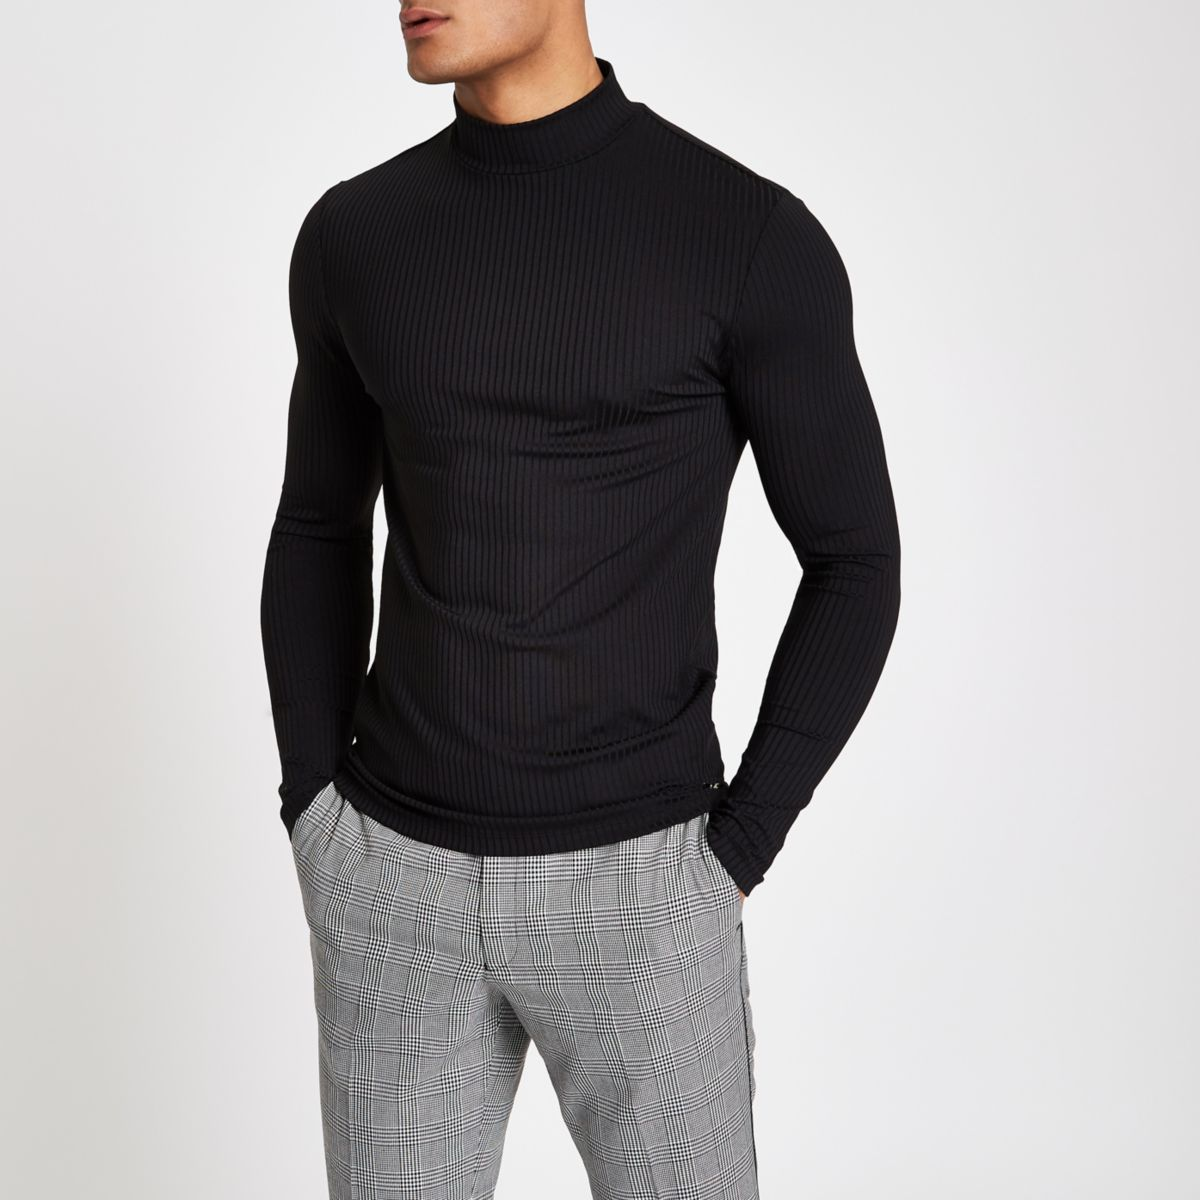 Black ribbed muscle fit turtle neck sweater